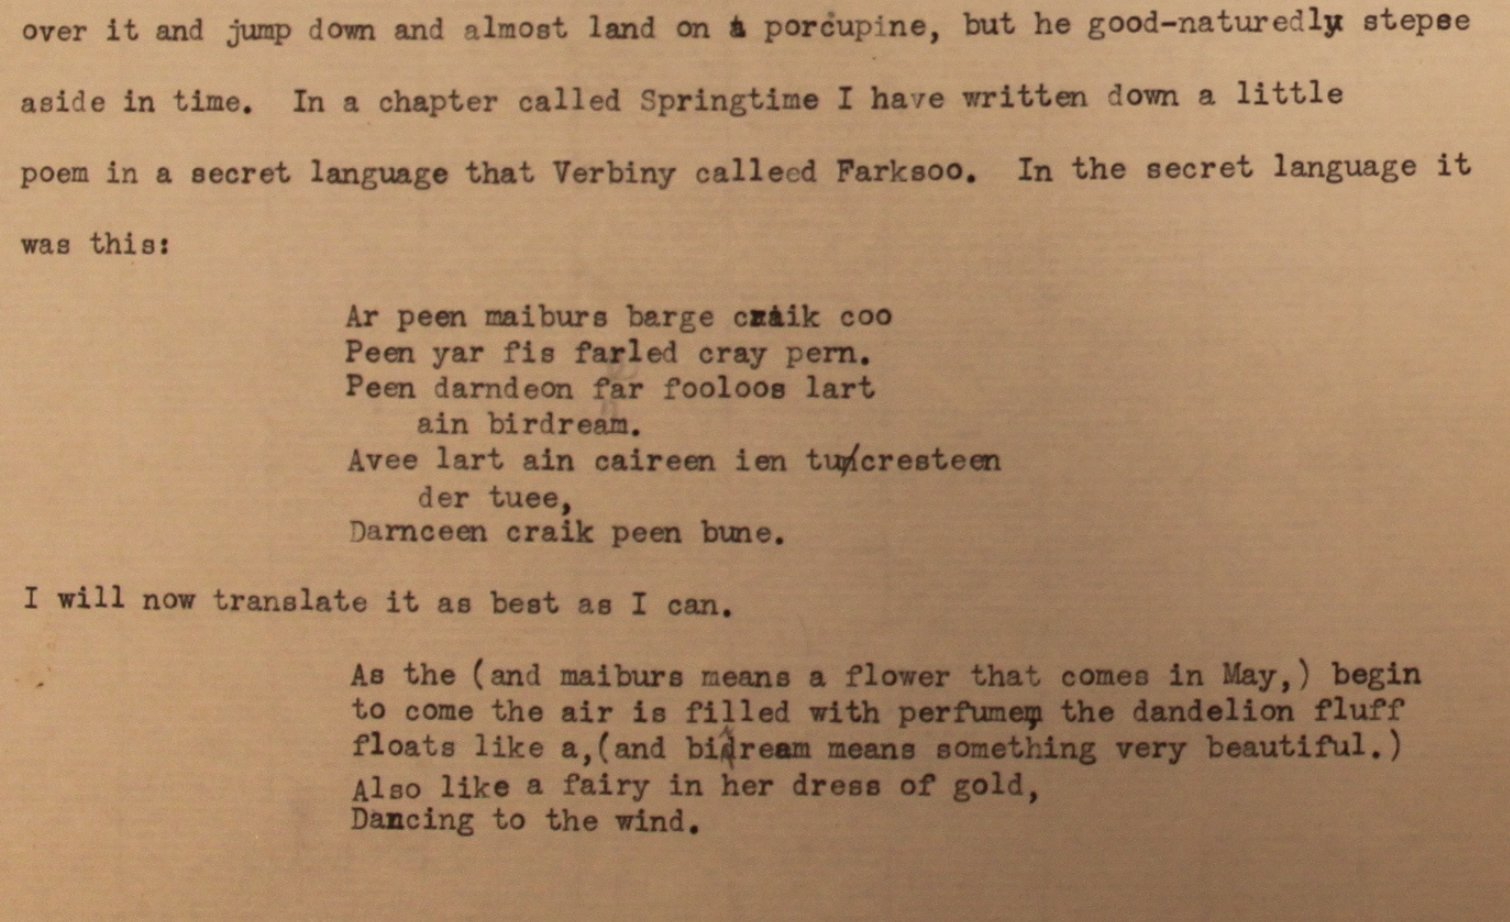 Barbara's first poem in Farksoo, May 1922